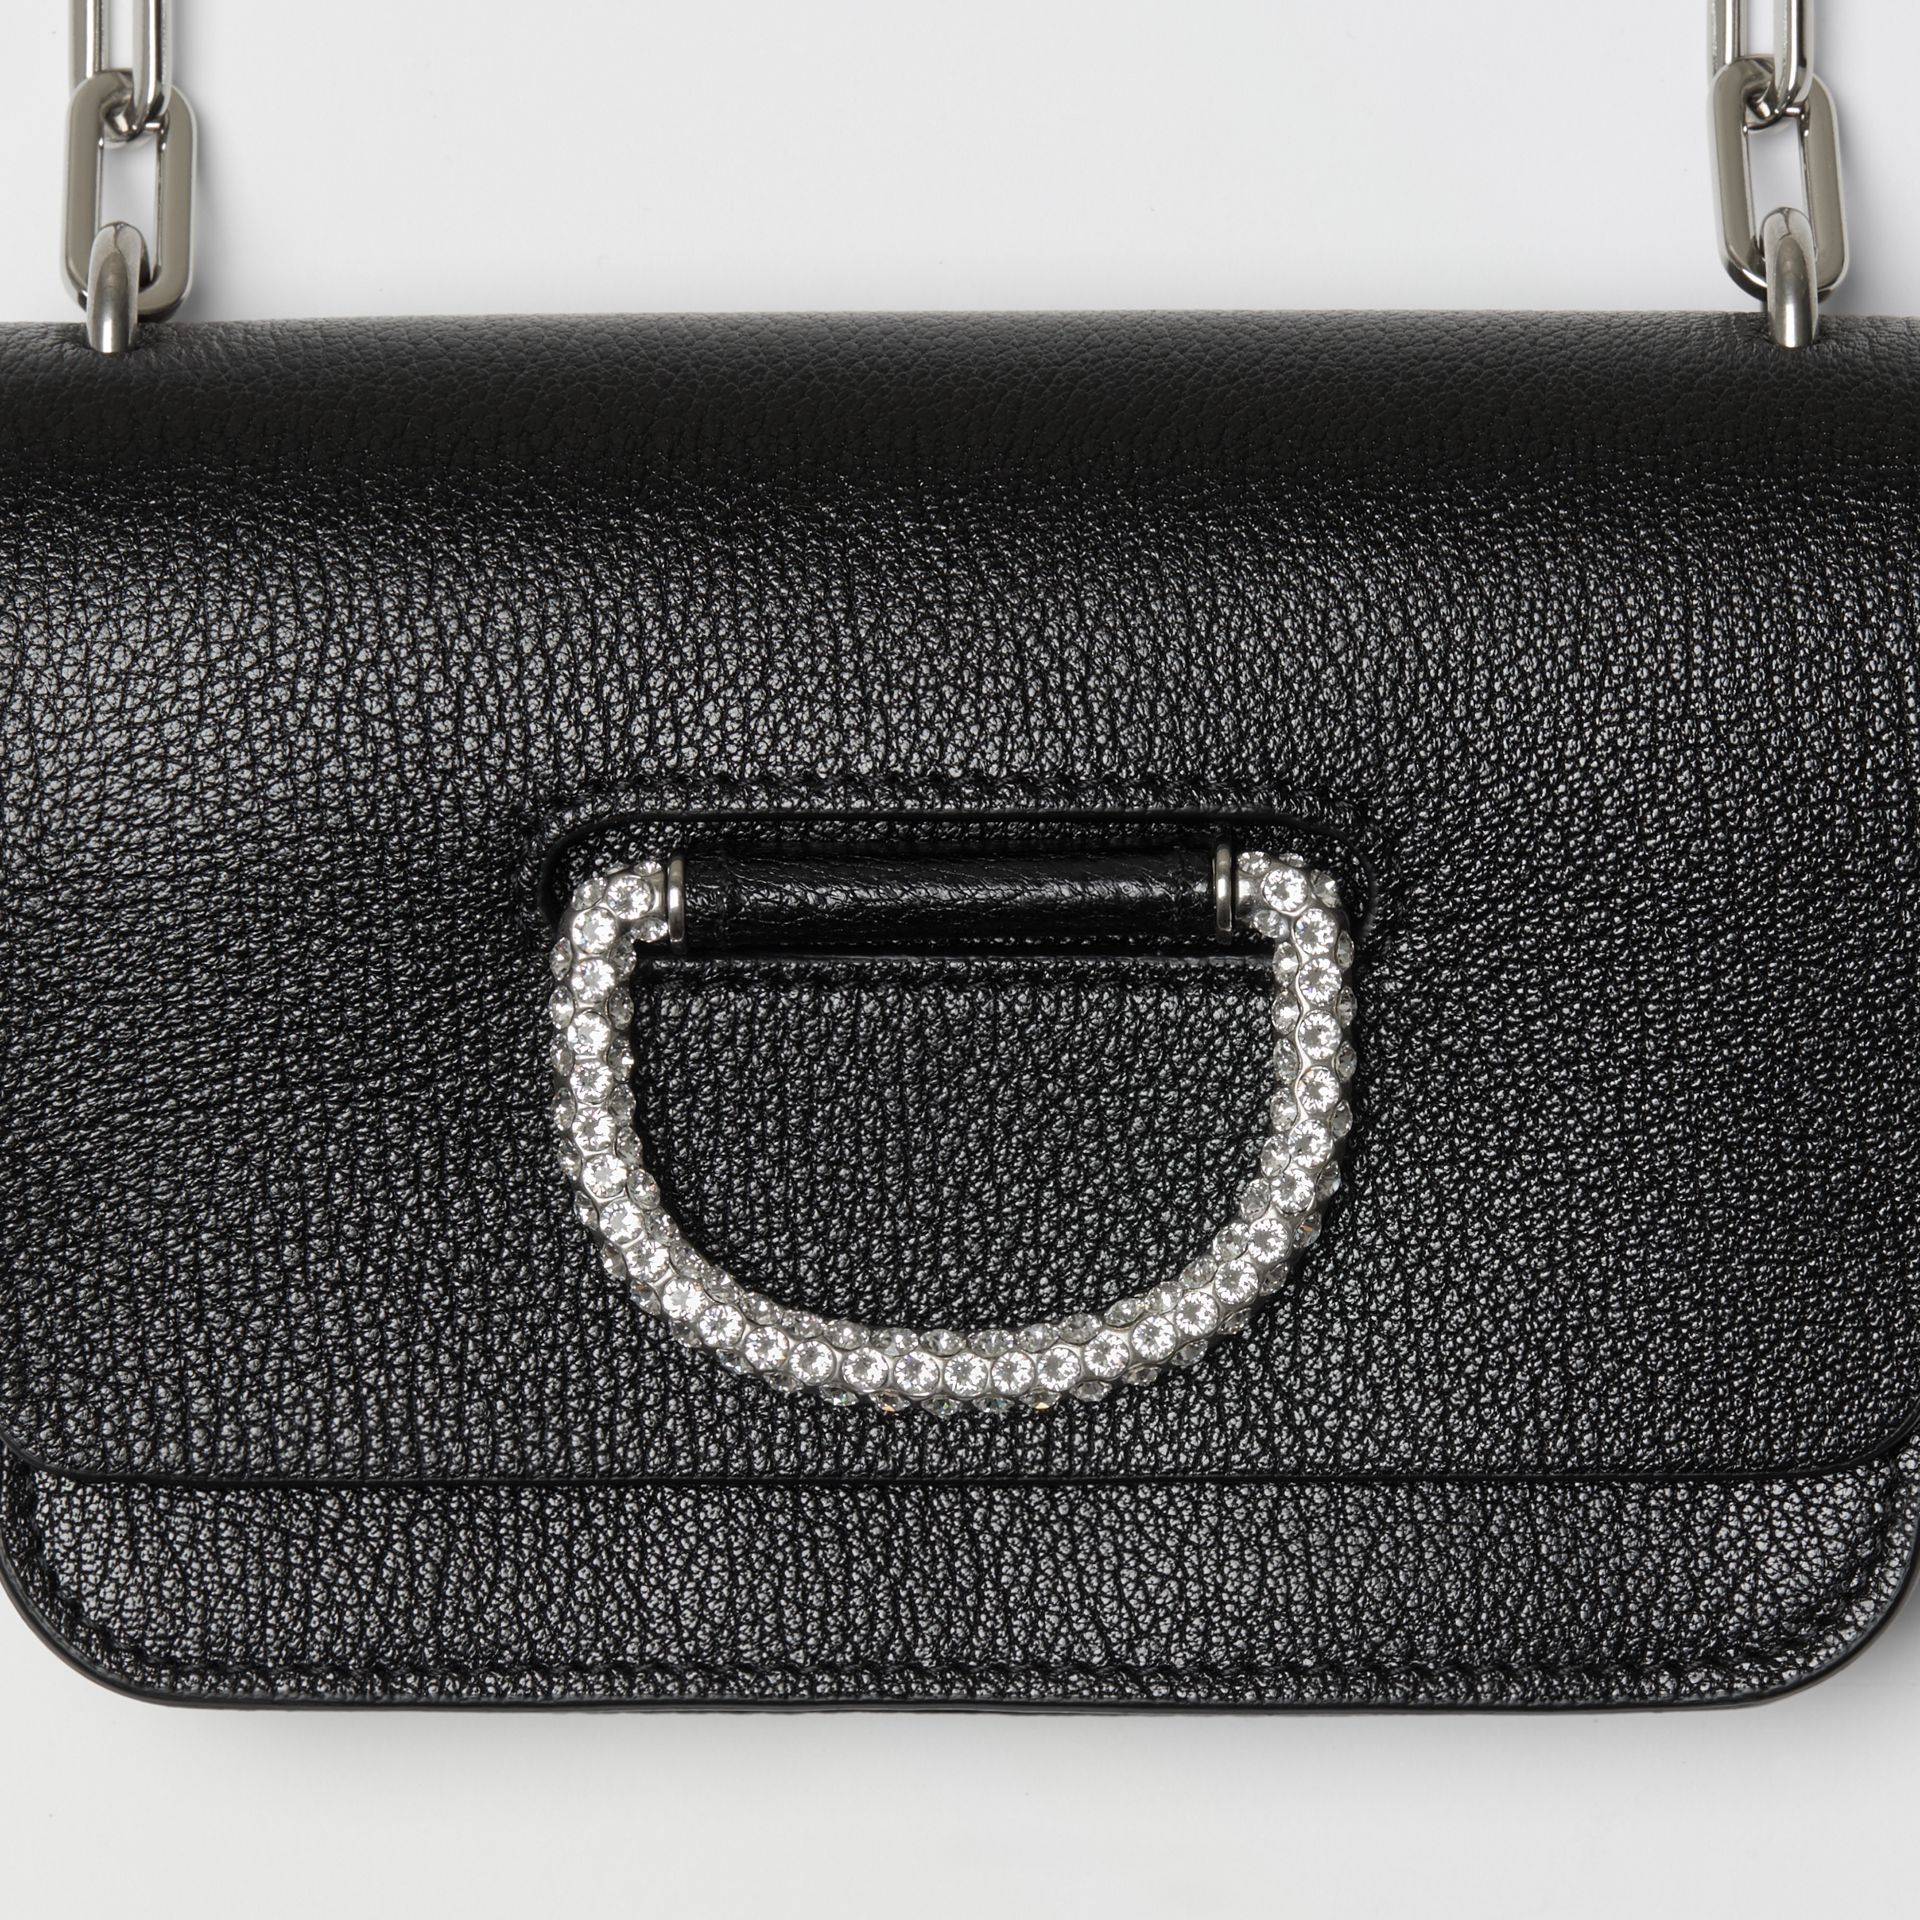 Borsa The D-ring mini in pelle con cristalli (Nero) - Donna | Burberry - immagine della galleria 4